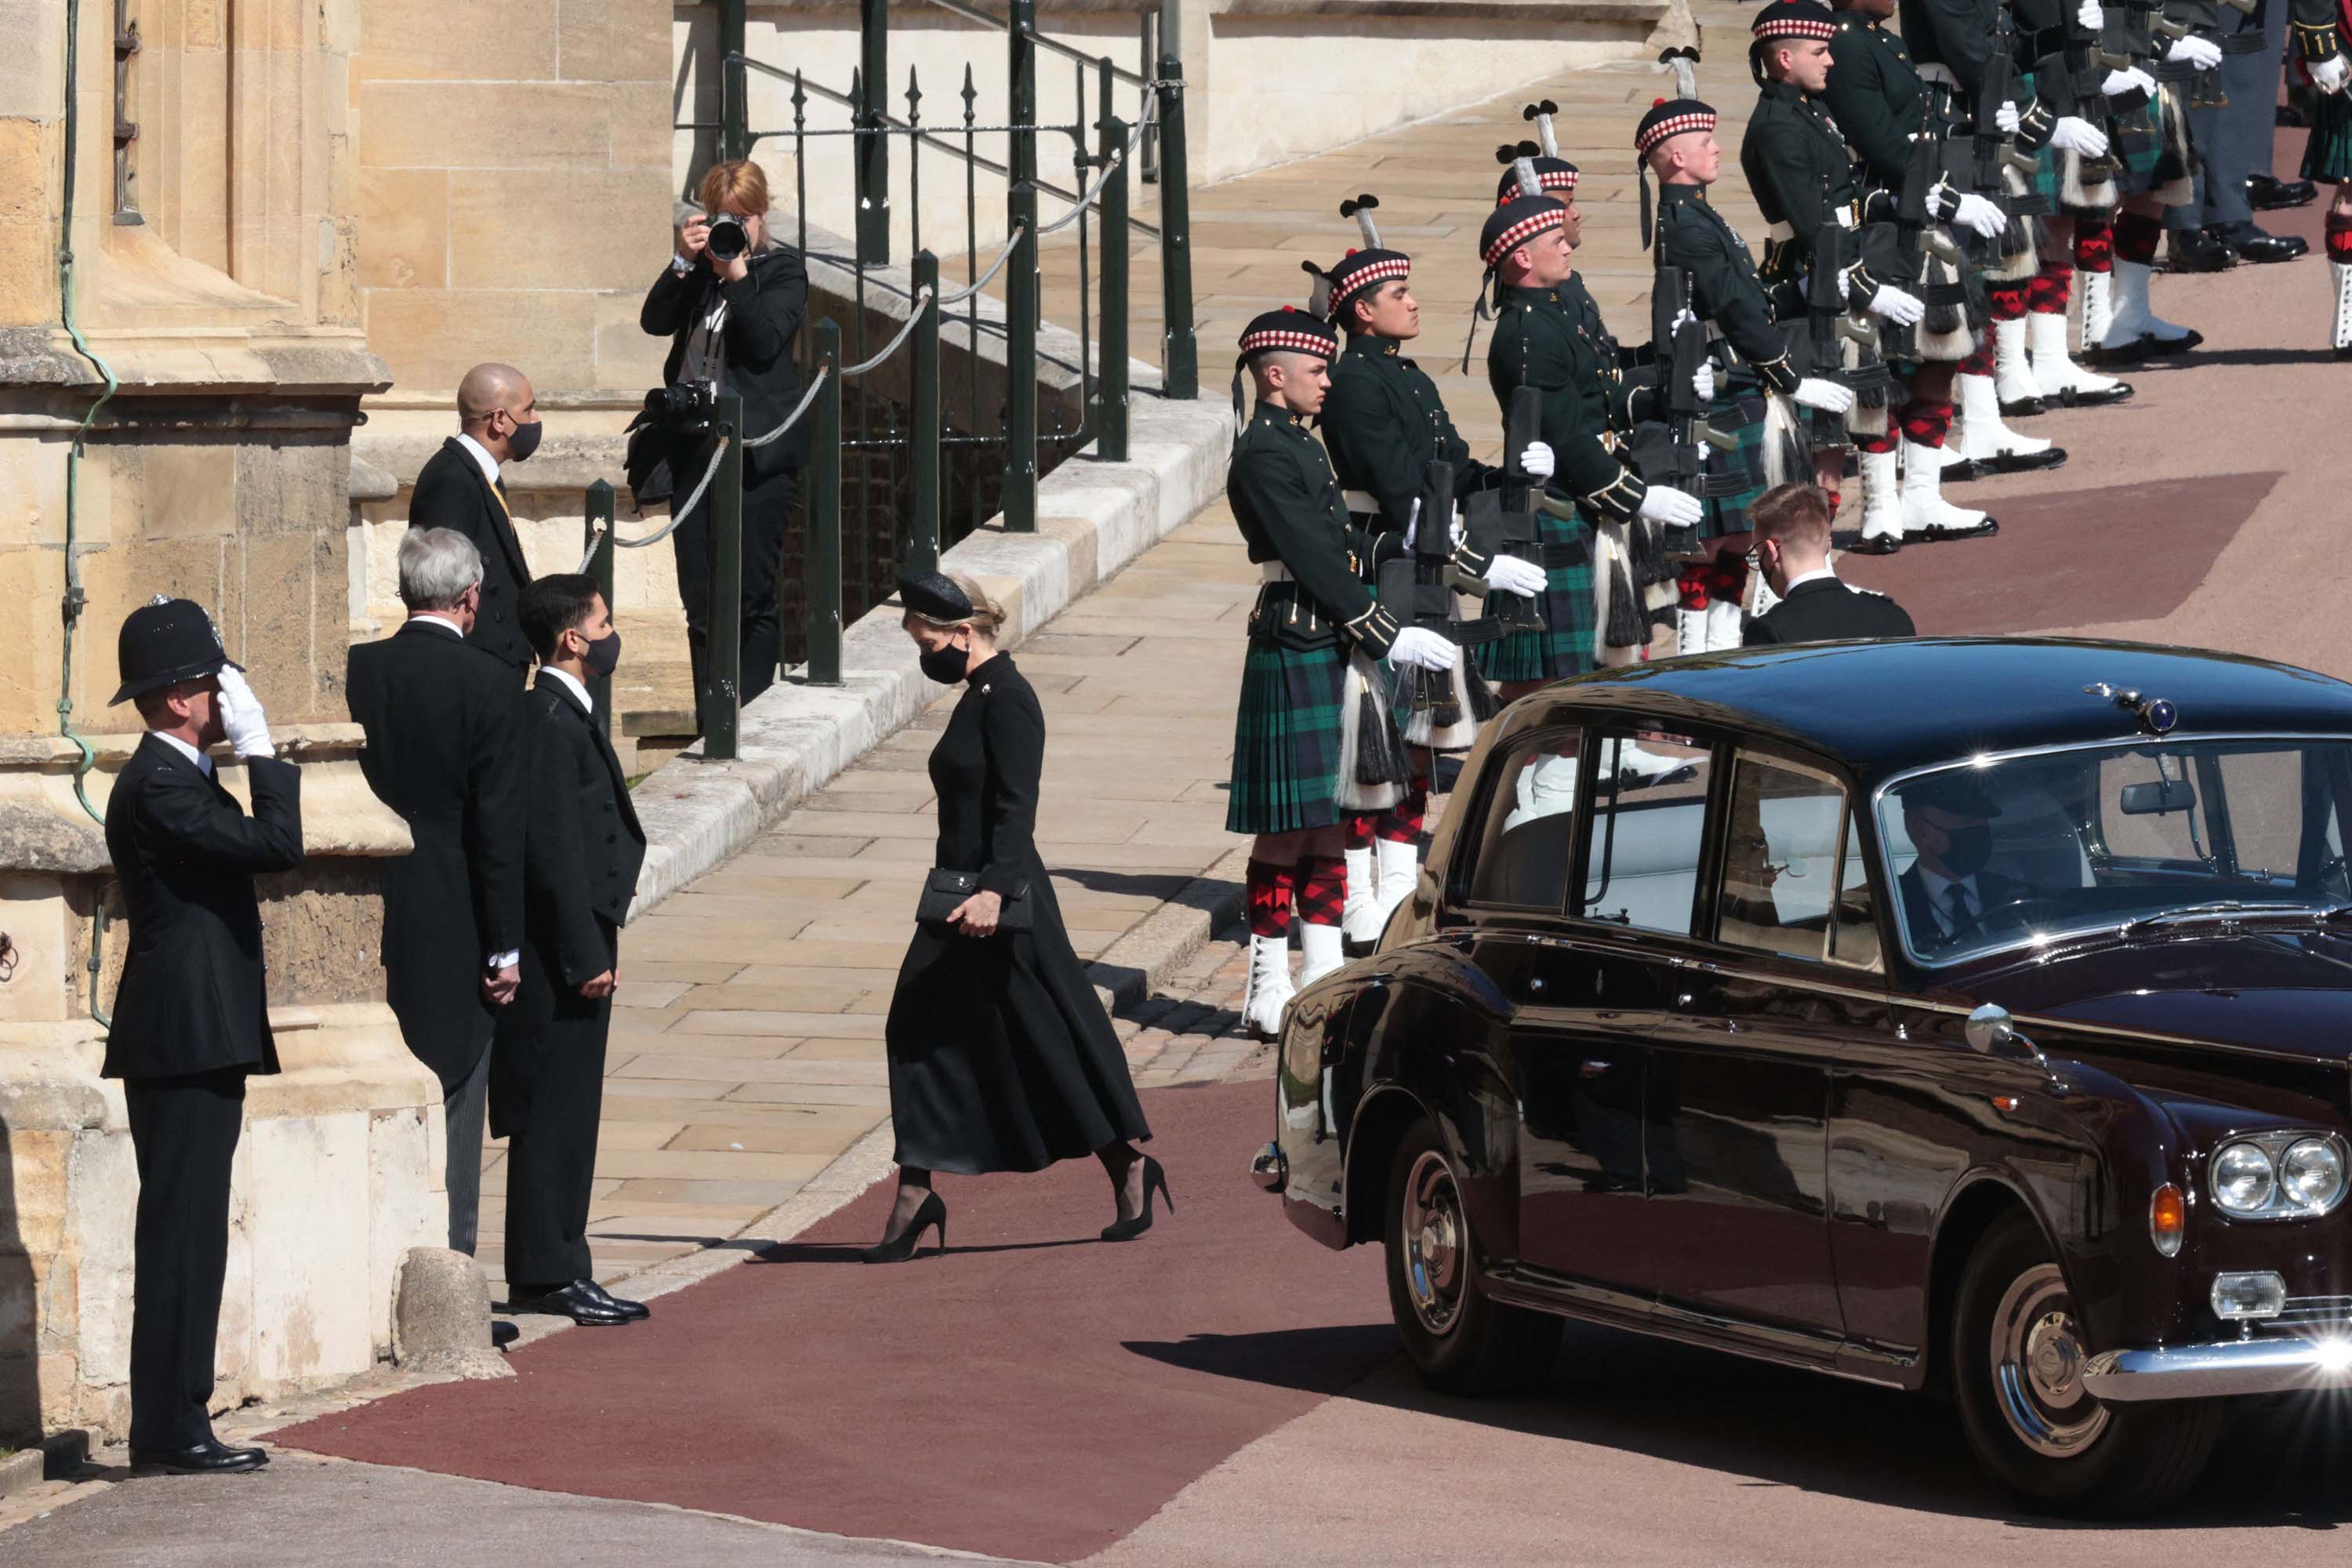 Britain's Sophie, Countess of Wessex arrives for the funeral service.